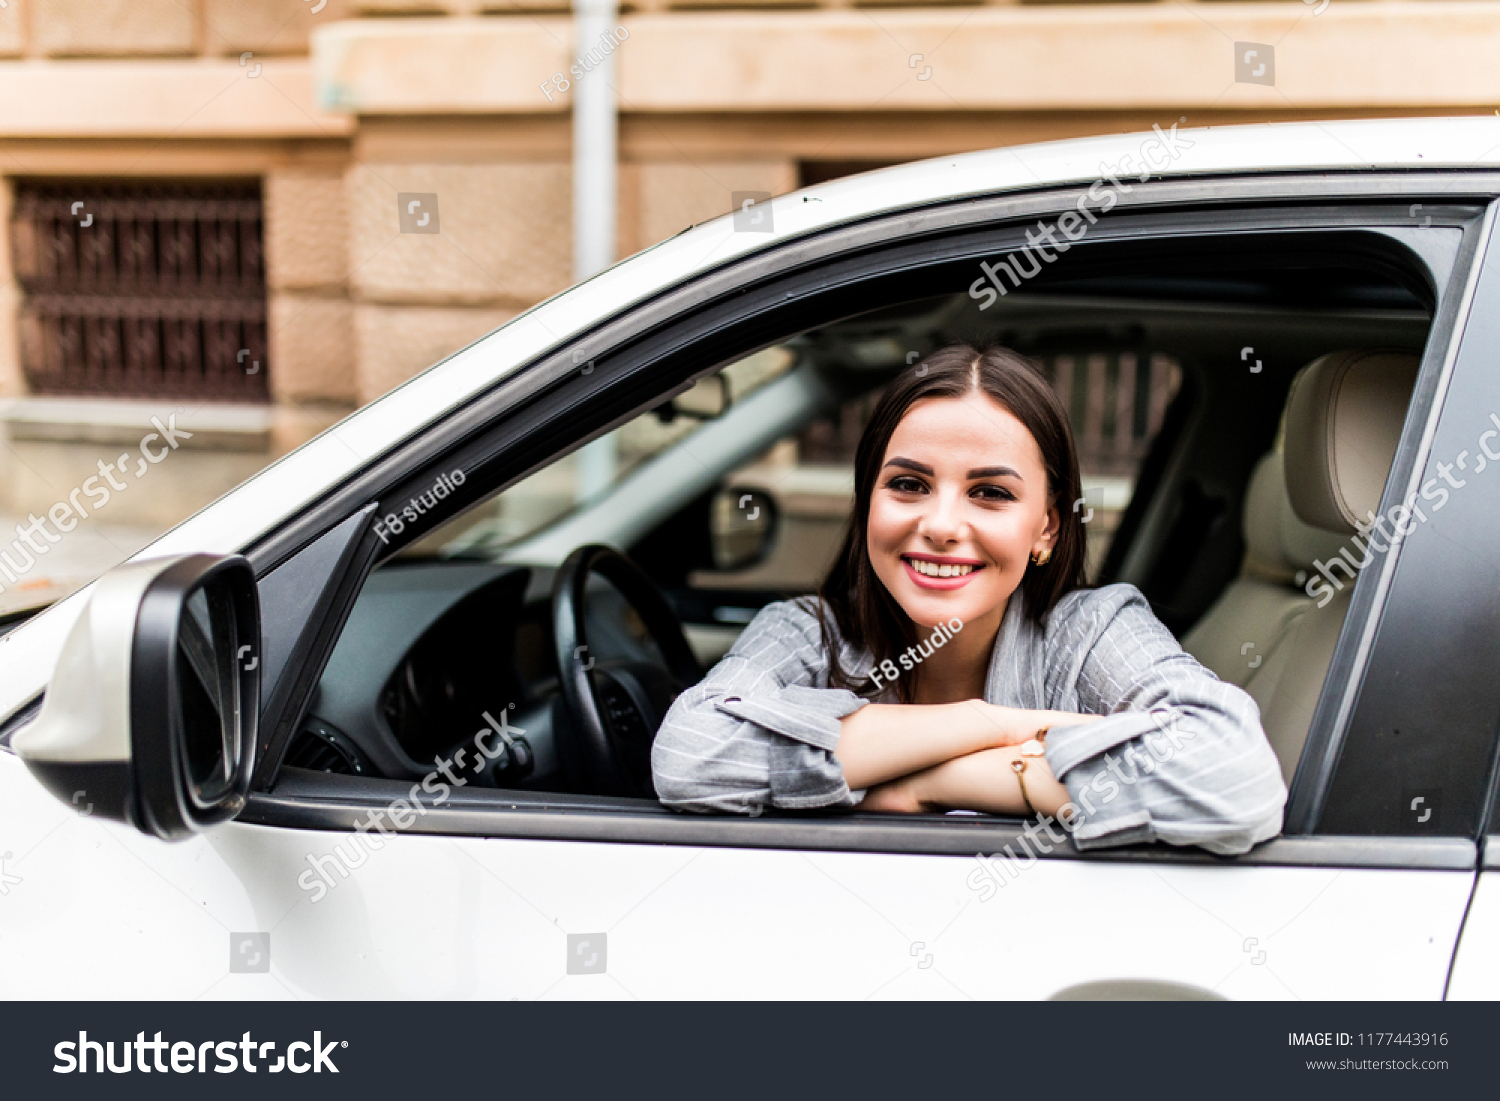 Closeup portrait attractive woman buyer sitting in her new car excited ready for trip isolated outside dealer dealership lot office. Personal transportation auto purchase concept #1177443916